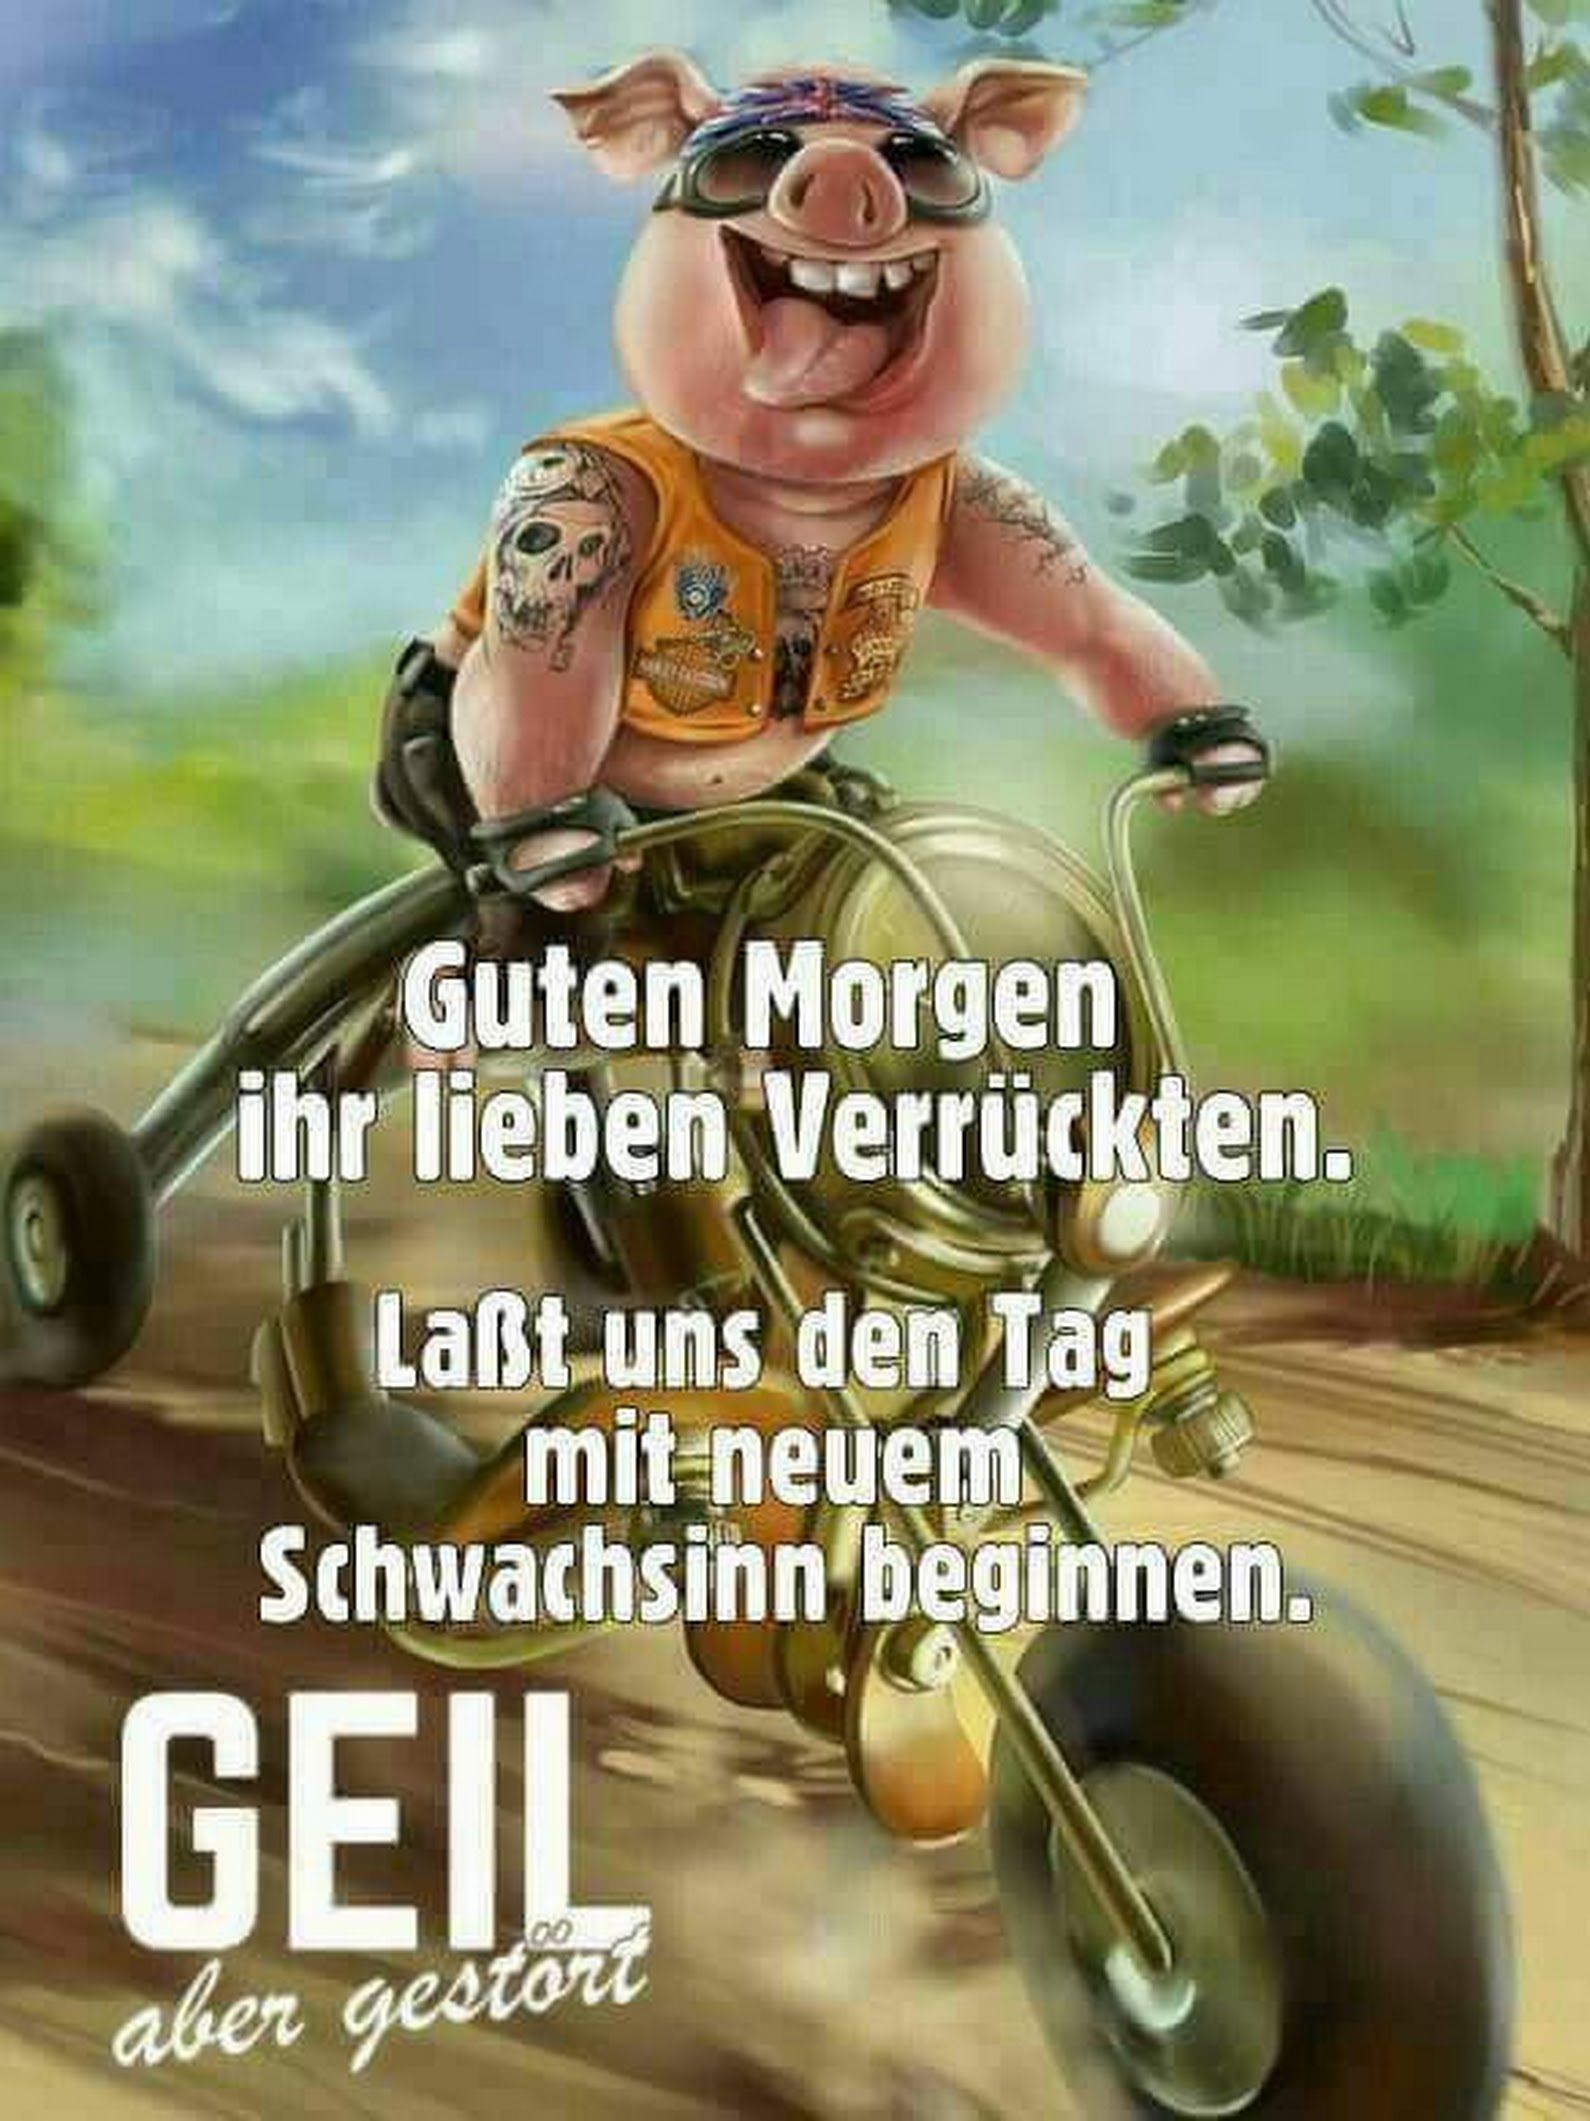 guten morgen an alle holger reichel google rickert. Black Bedroom Furniture Sets. Home Design Ideas